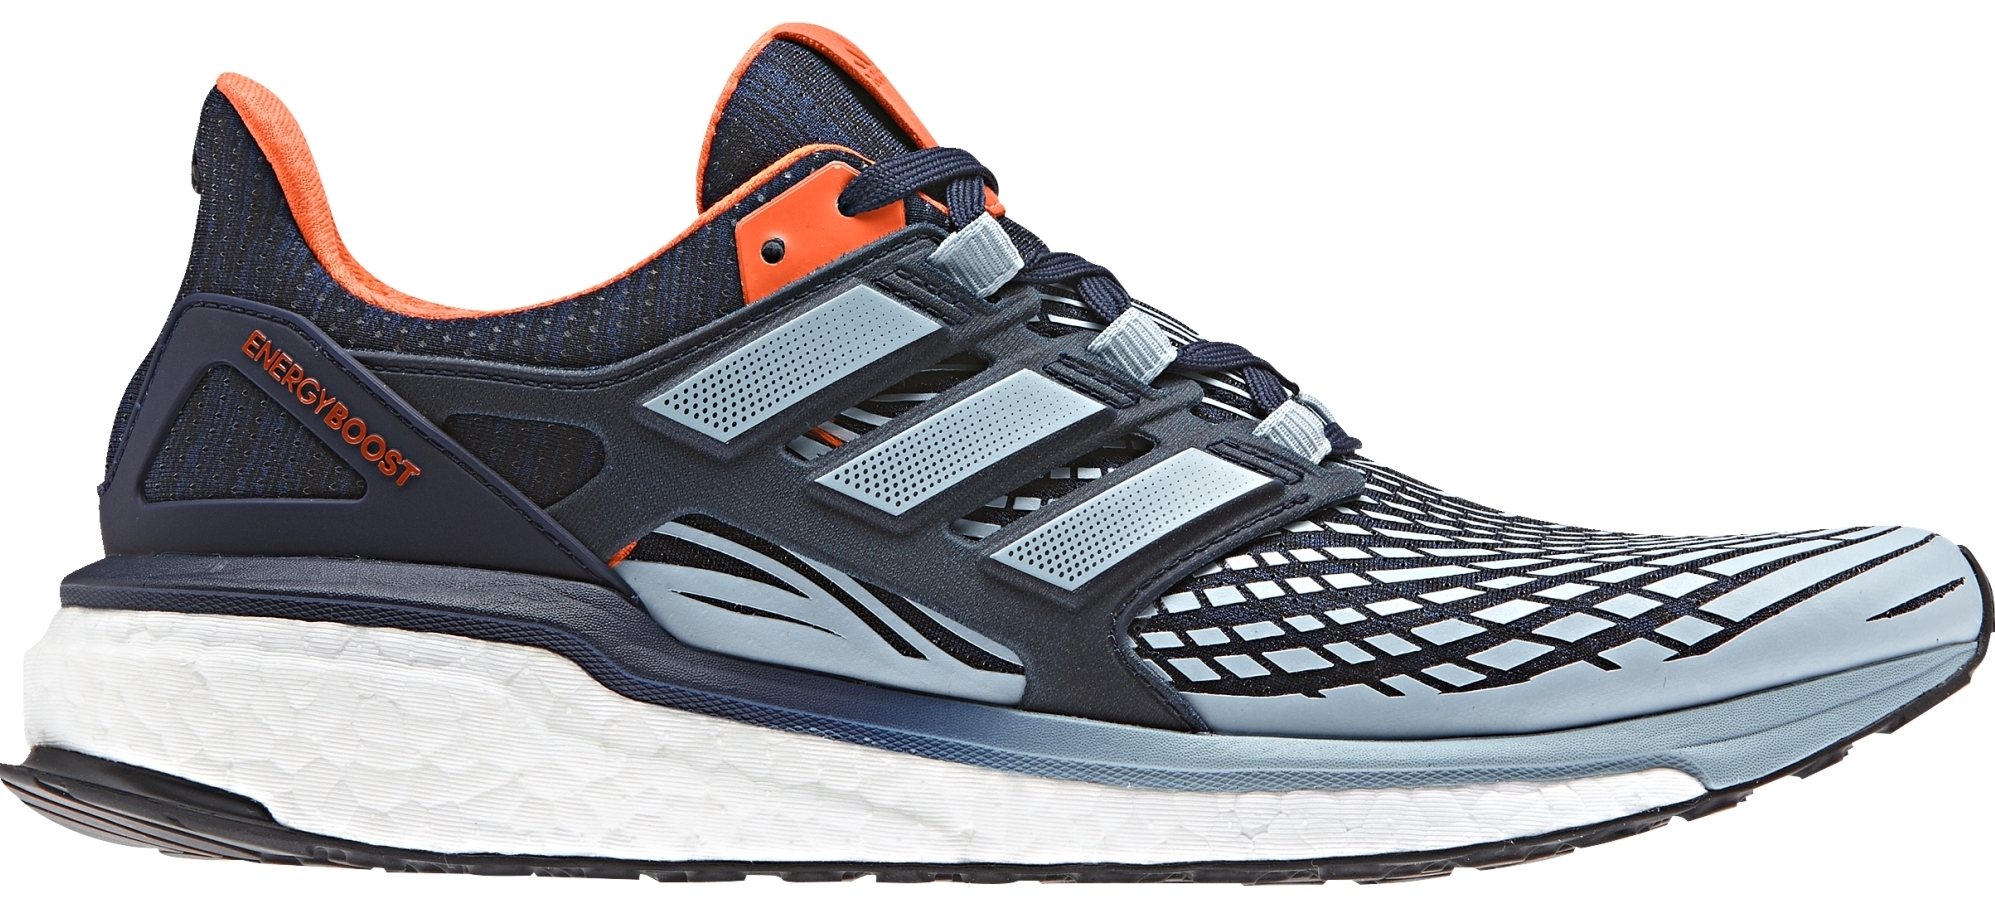 Energy Boost herr CP9540 original.jpg